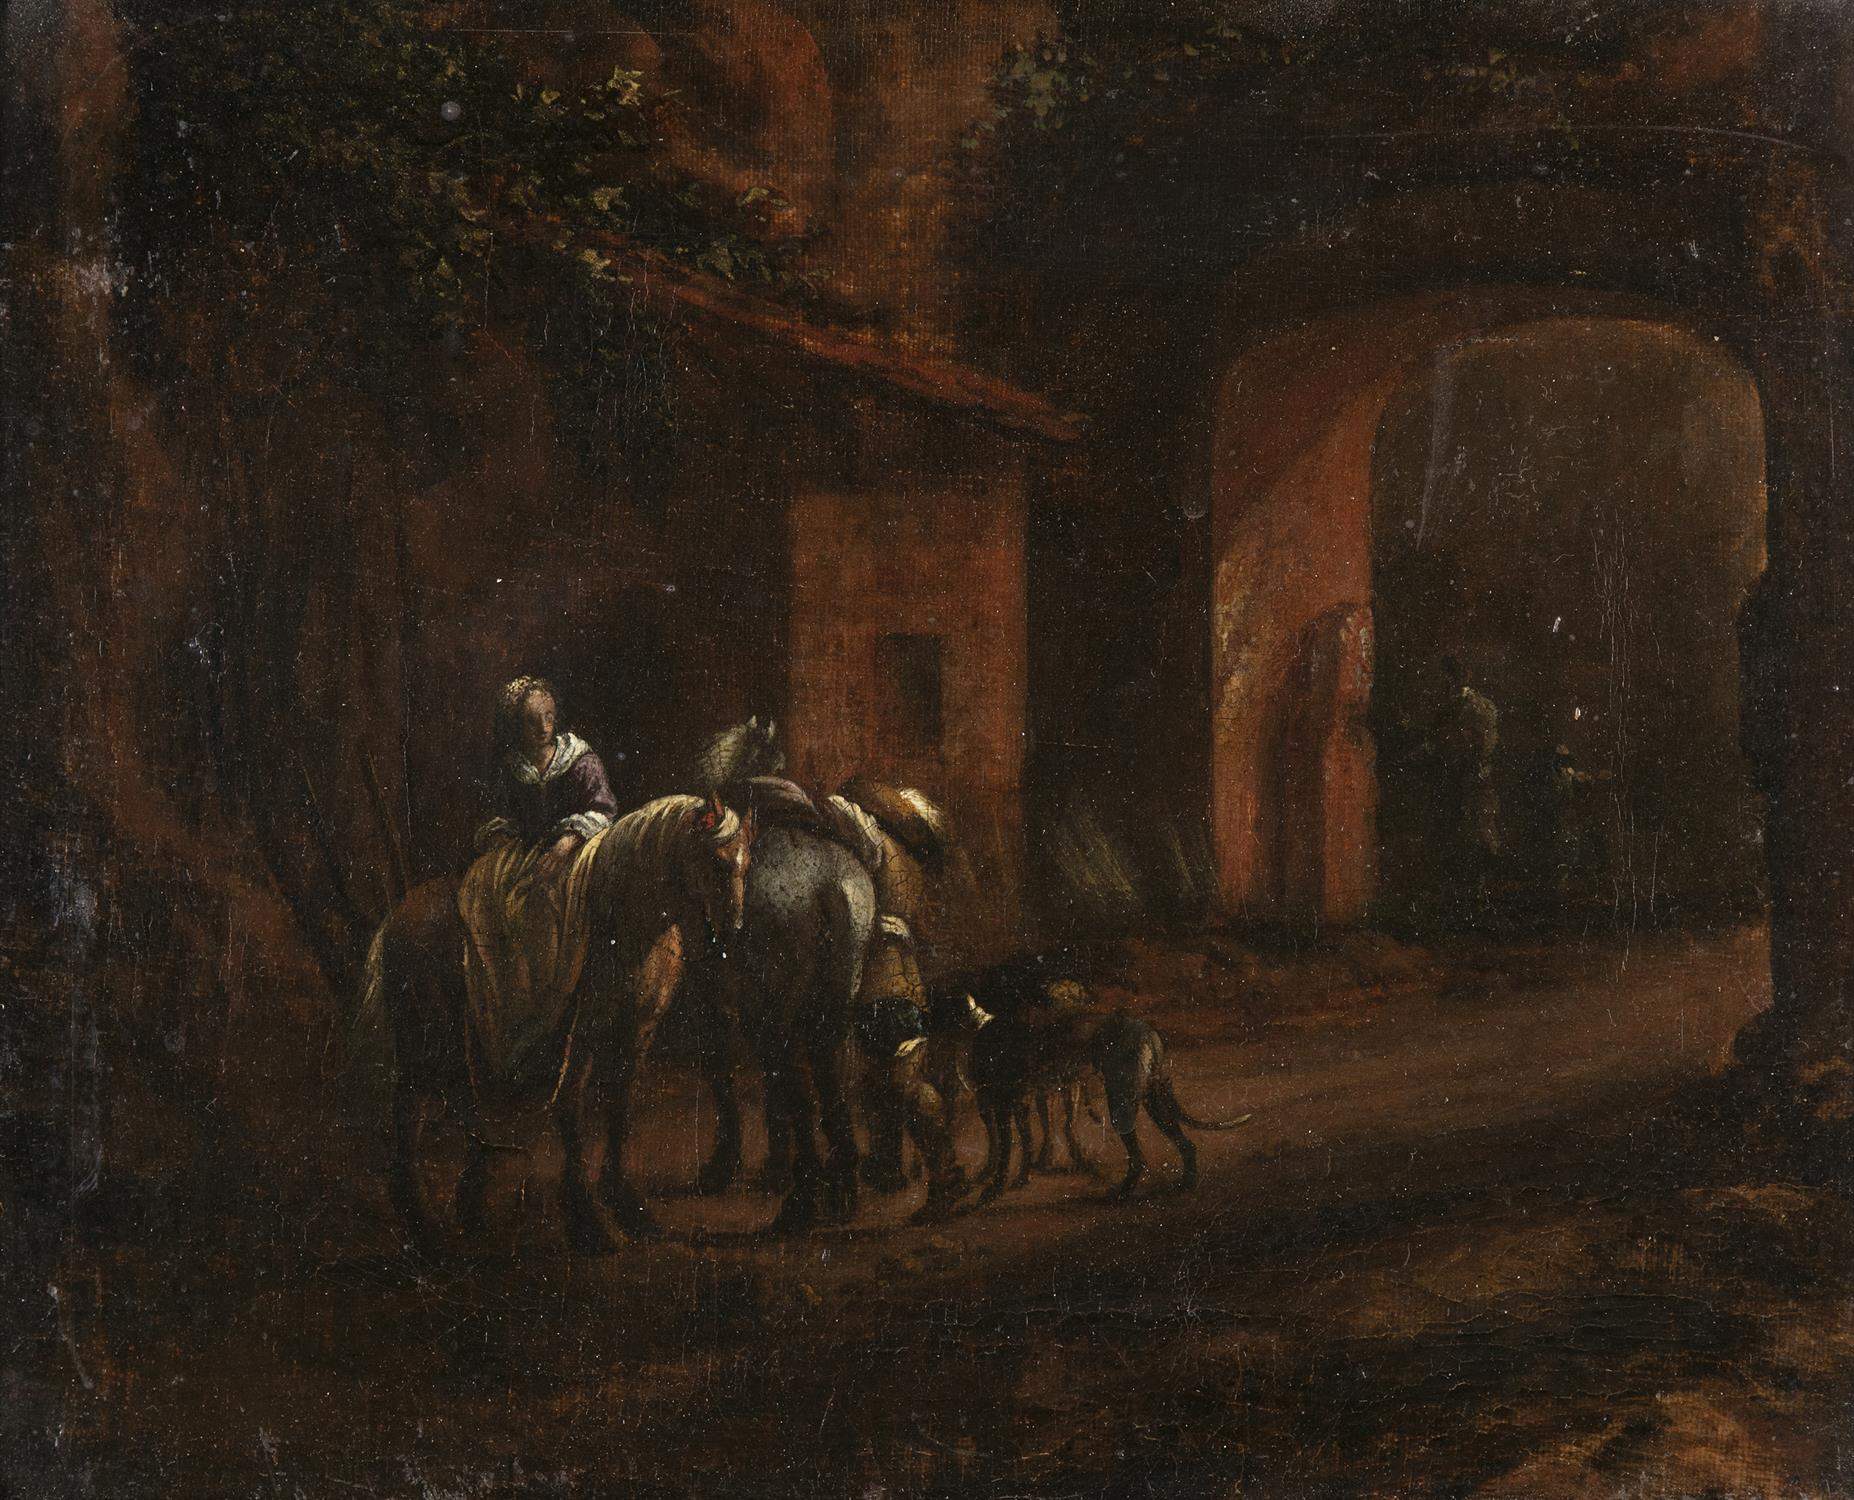 FOLLOWER OF WOUWERMANS (17TH CENTURY) Figures with horse and dogs in a village Oil on canvas, - Image 2 of 3